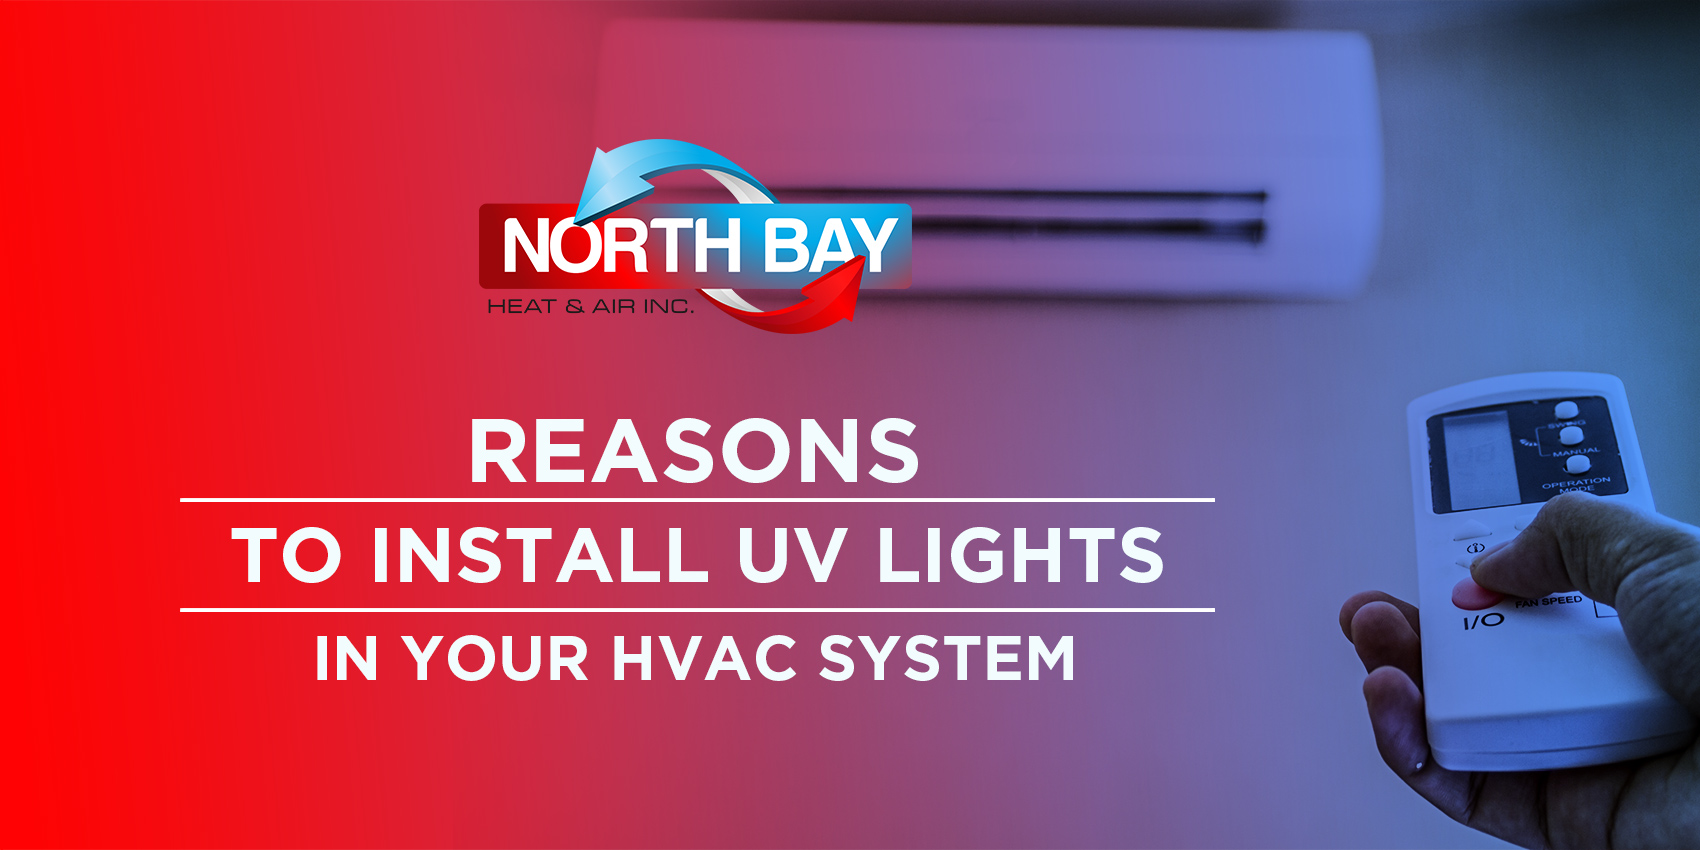 Reasons to Install UV Lights in Your HVAC System